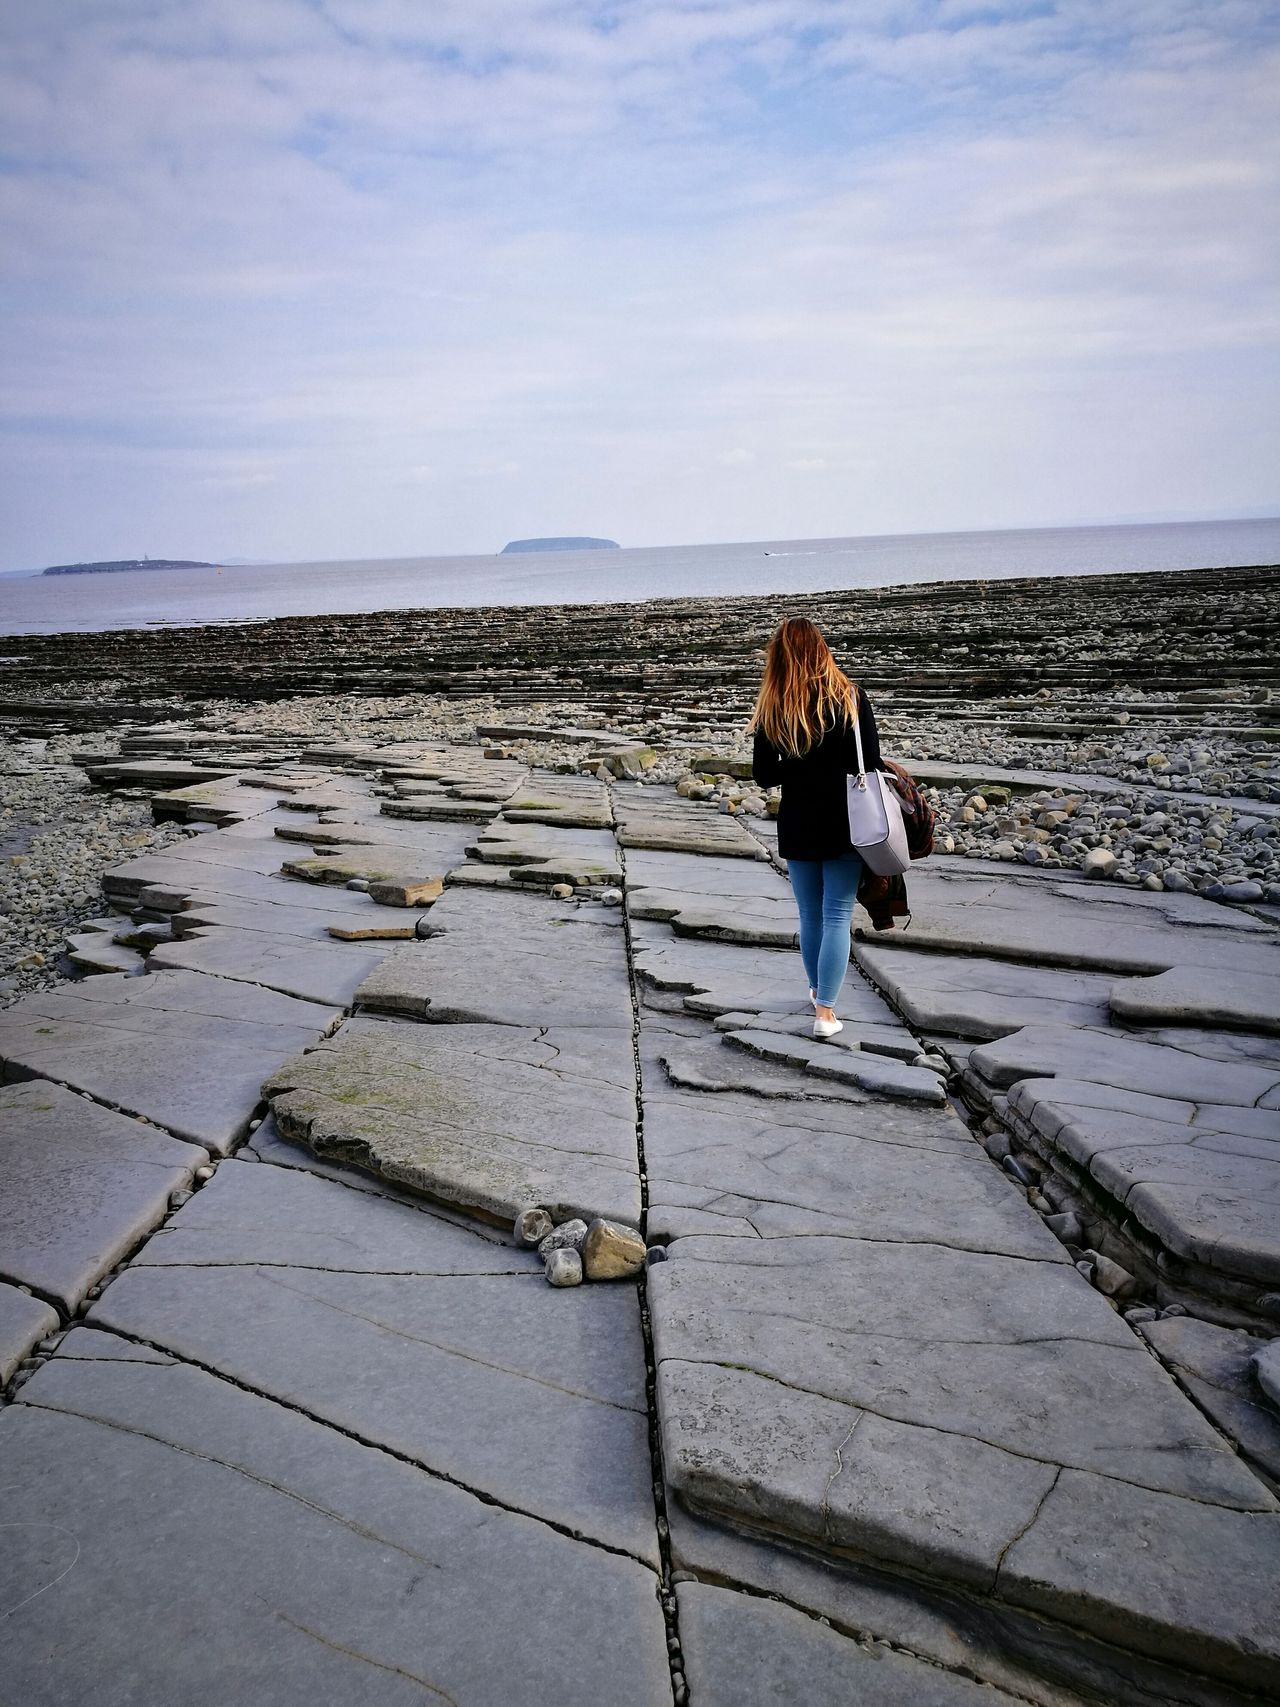 Penarth Lavernock Point Cardiff, Beachphotography Beach Walk Fresh Air.  Beachlovers Wales❤ Wales UK United Kingdom Afternoon Walk Wonderful Moment Lets Go! Afternoon Light Fresh Air.